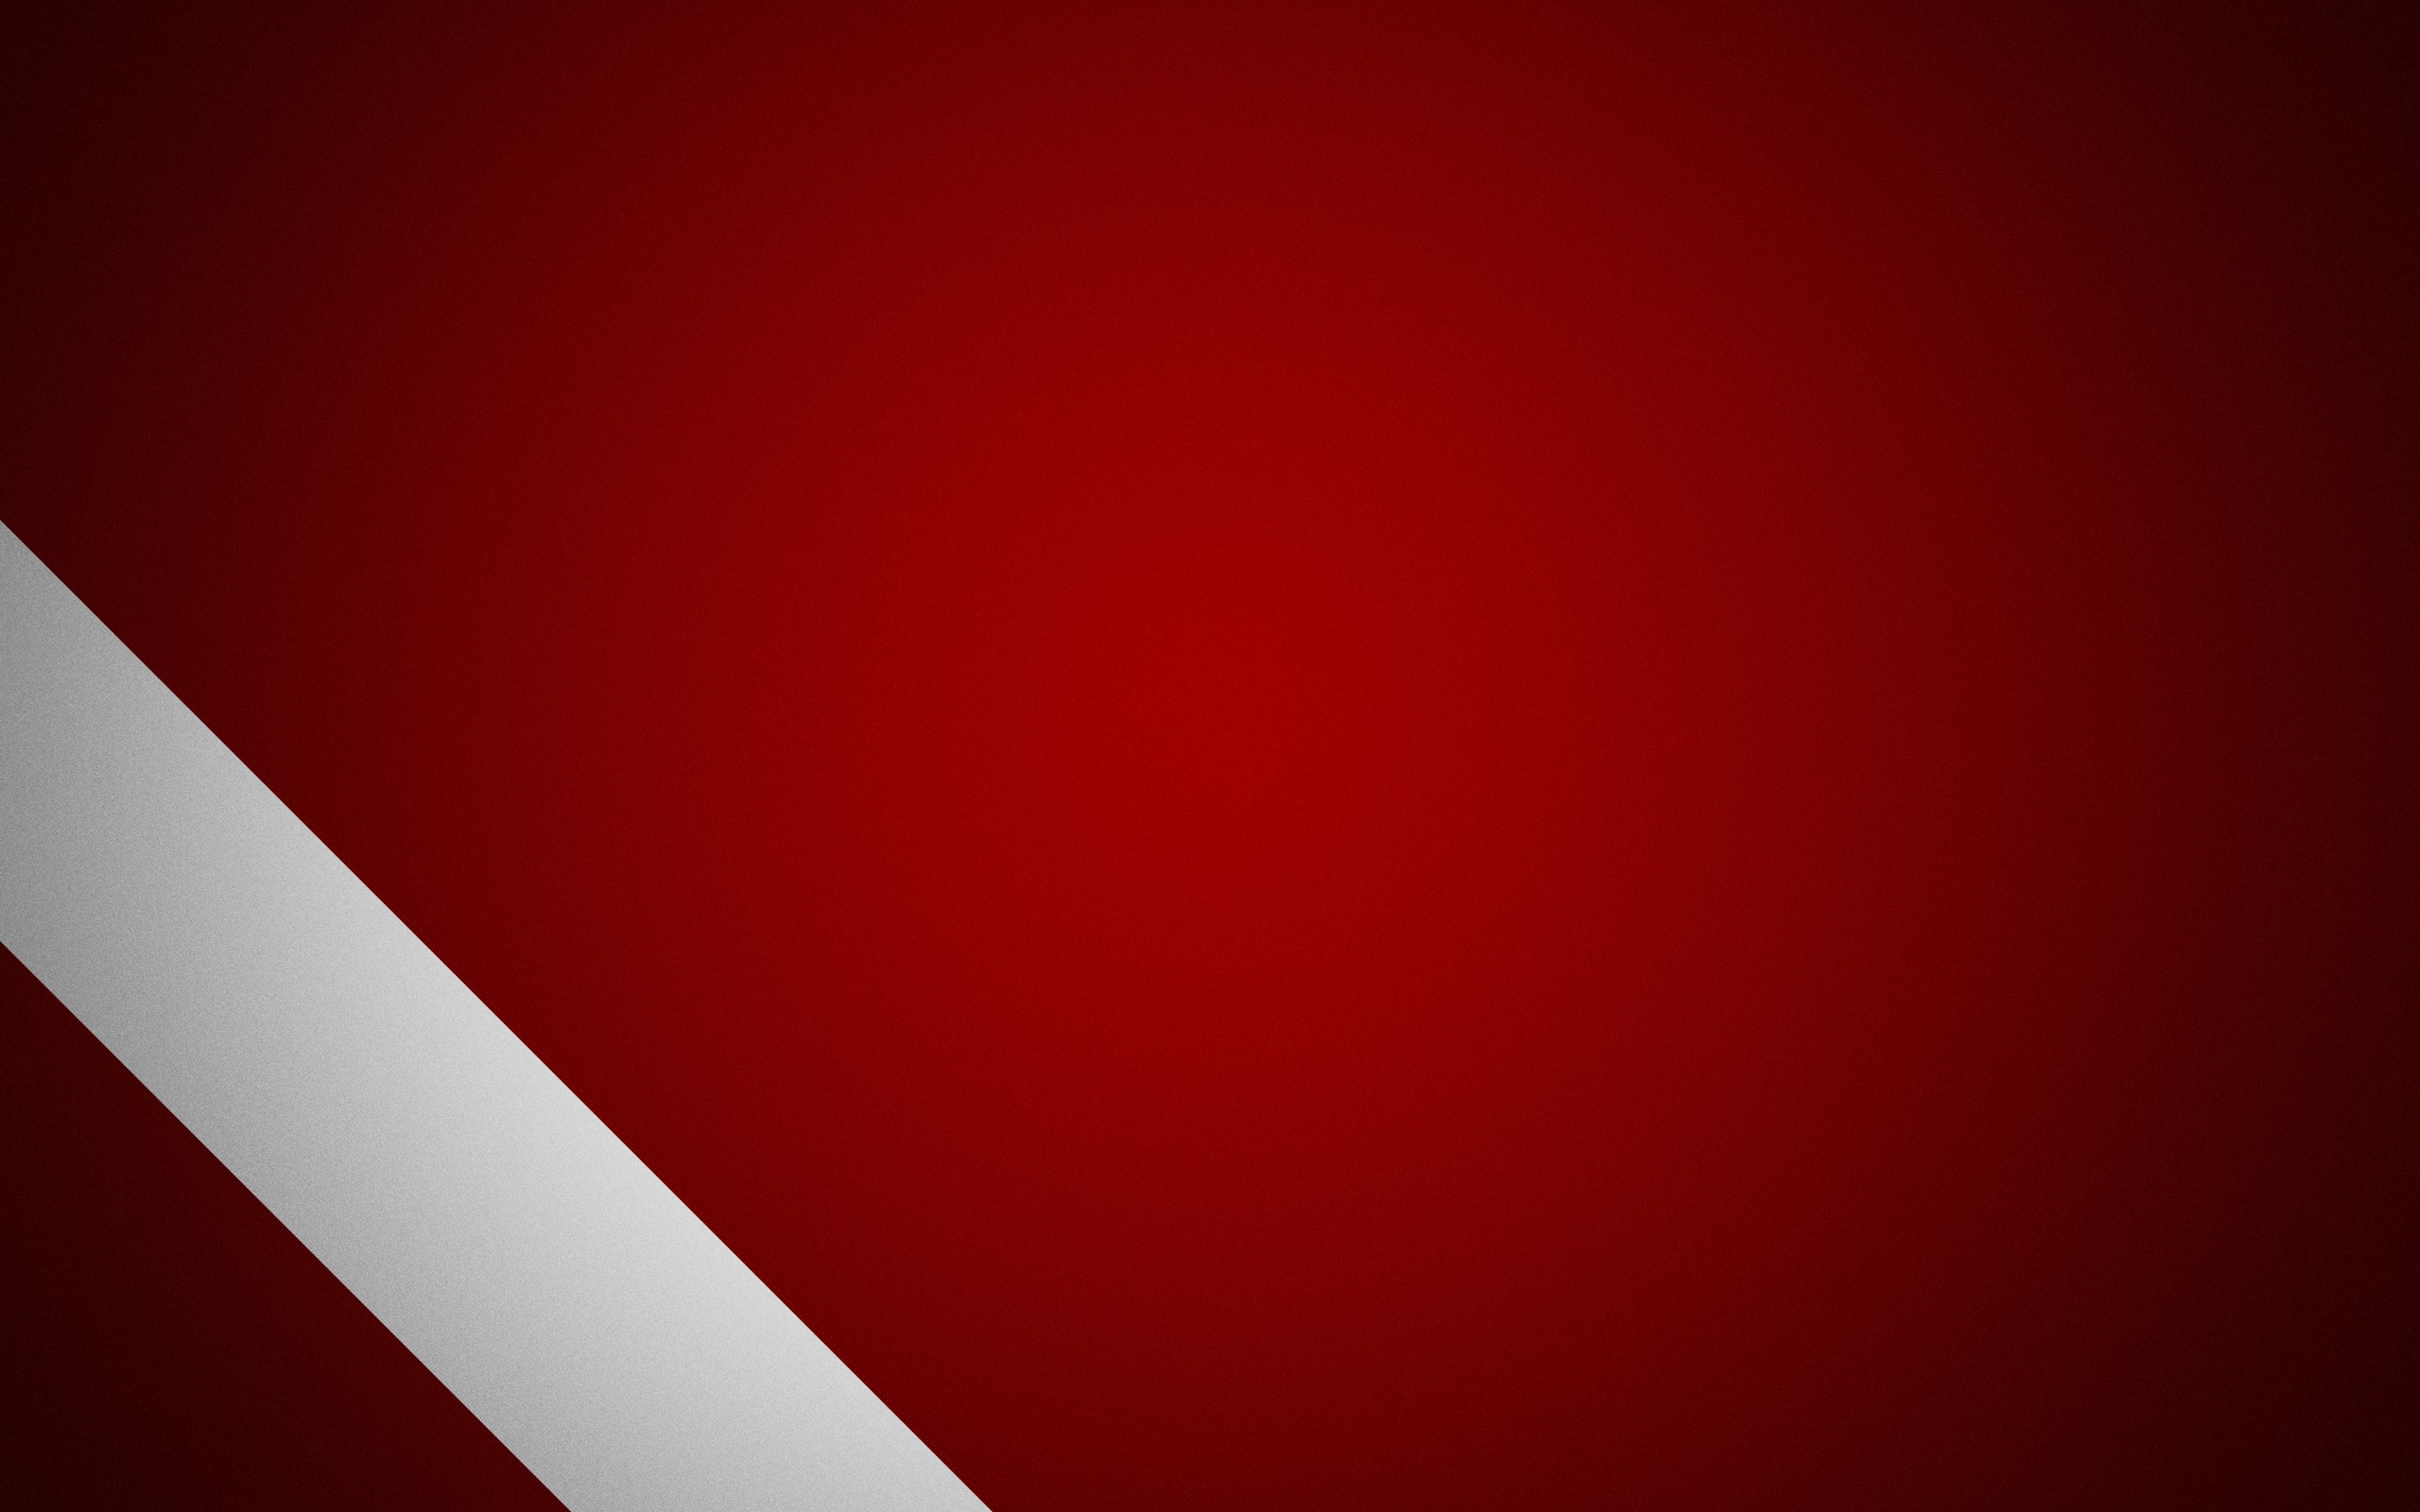 2560x1600 White and Red desktop PC and Mac wallpaper